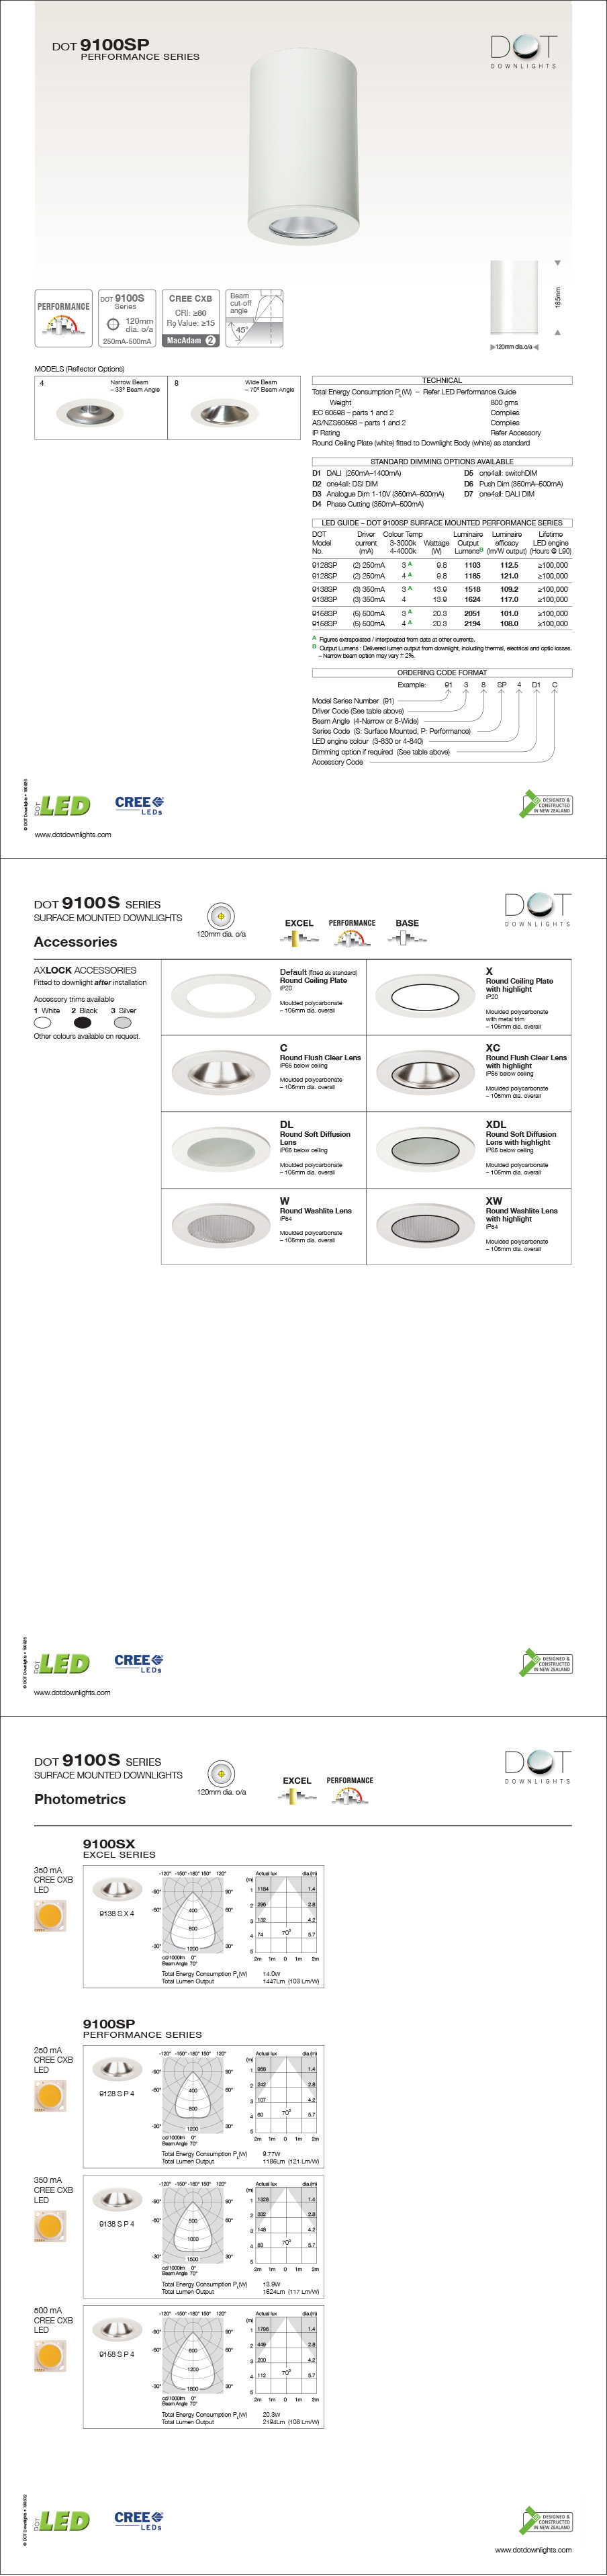 DOT 9700SP Downlight Data Sheet